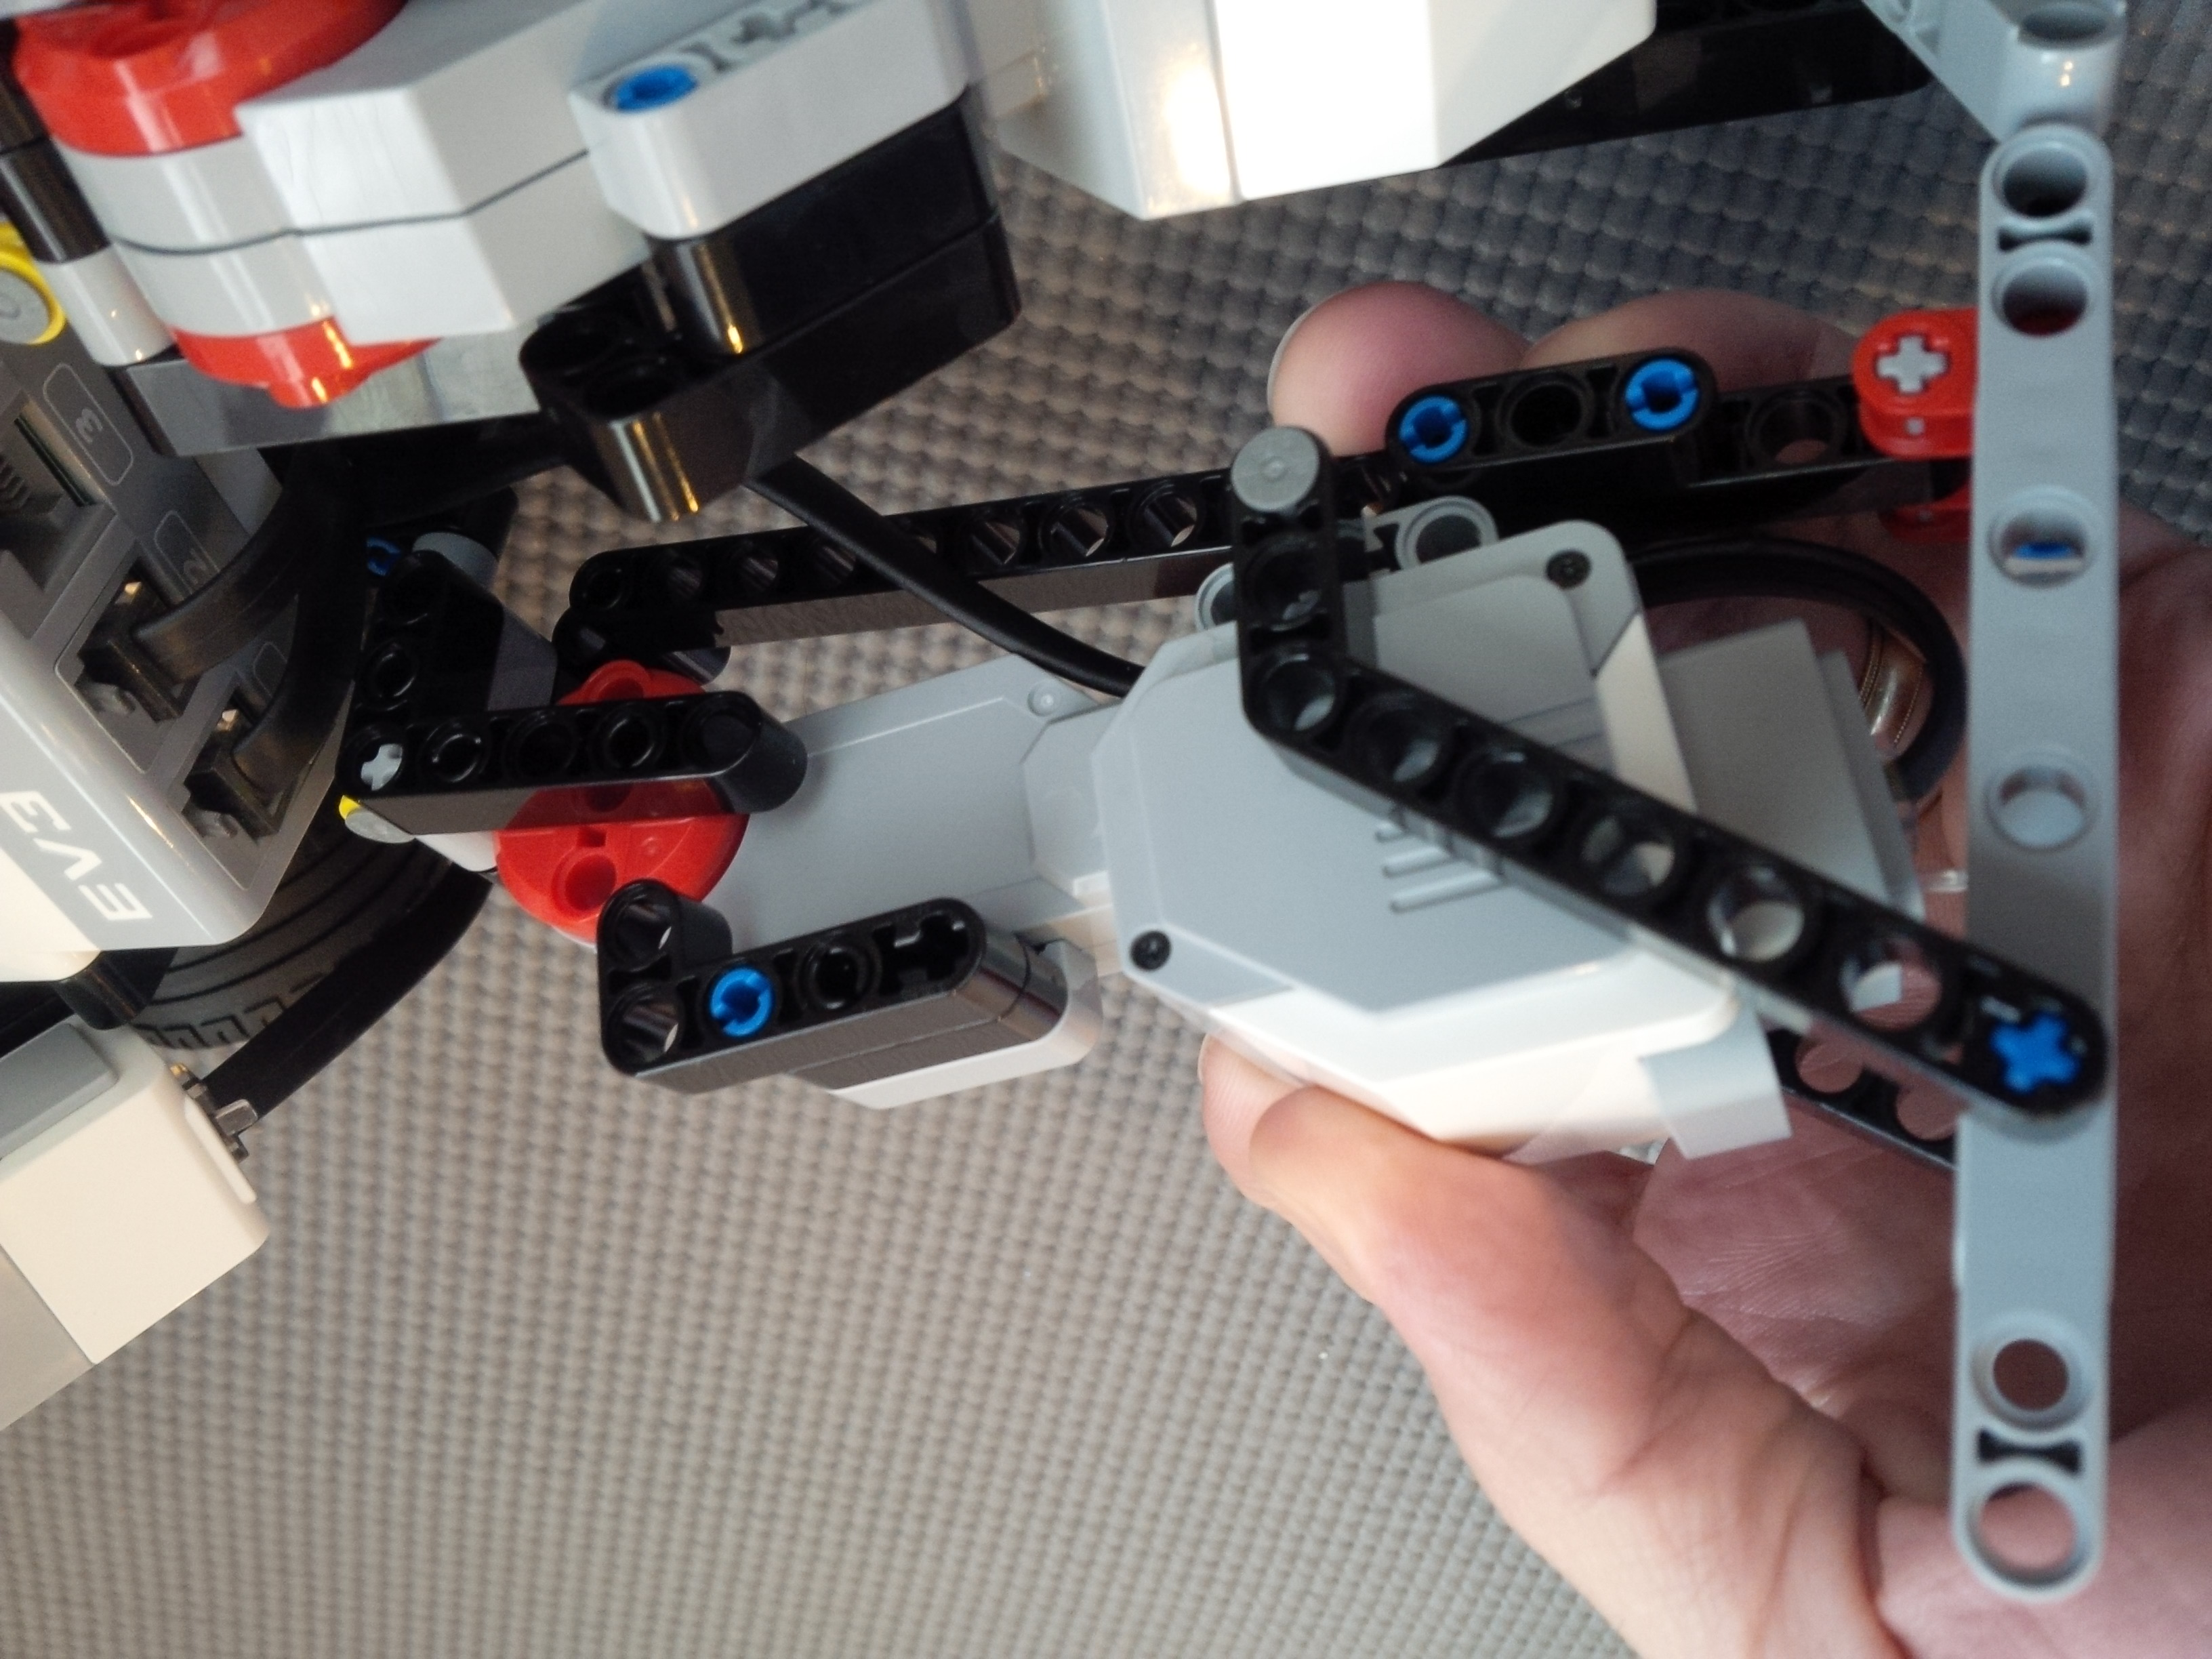 Inner leg view of Lego Mindstorms Dancing Robot